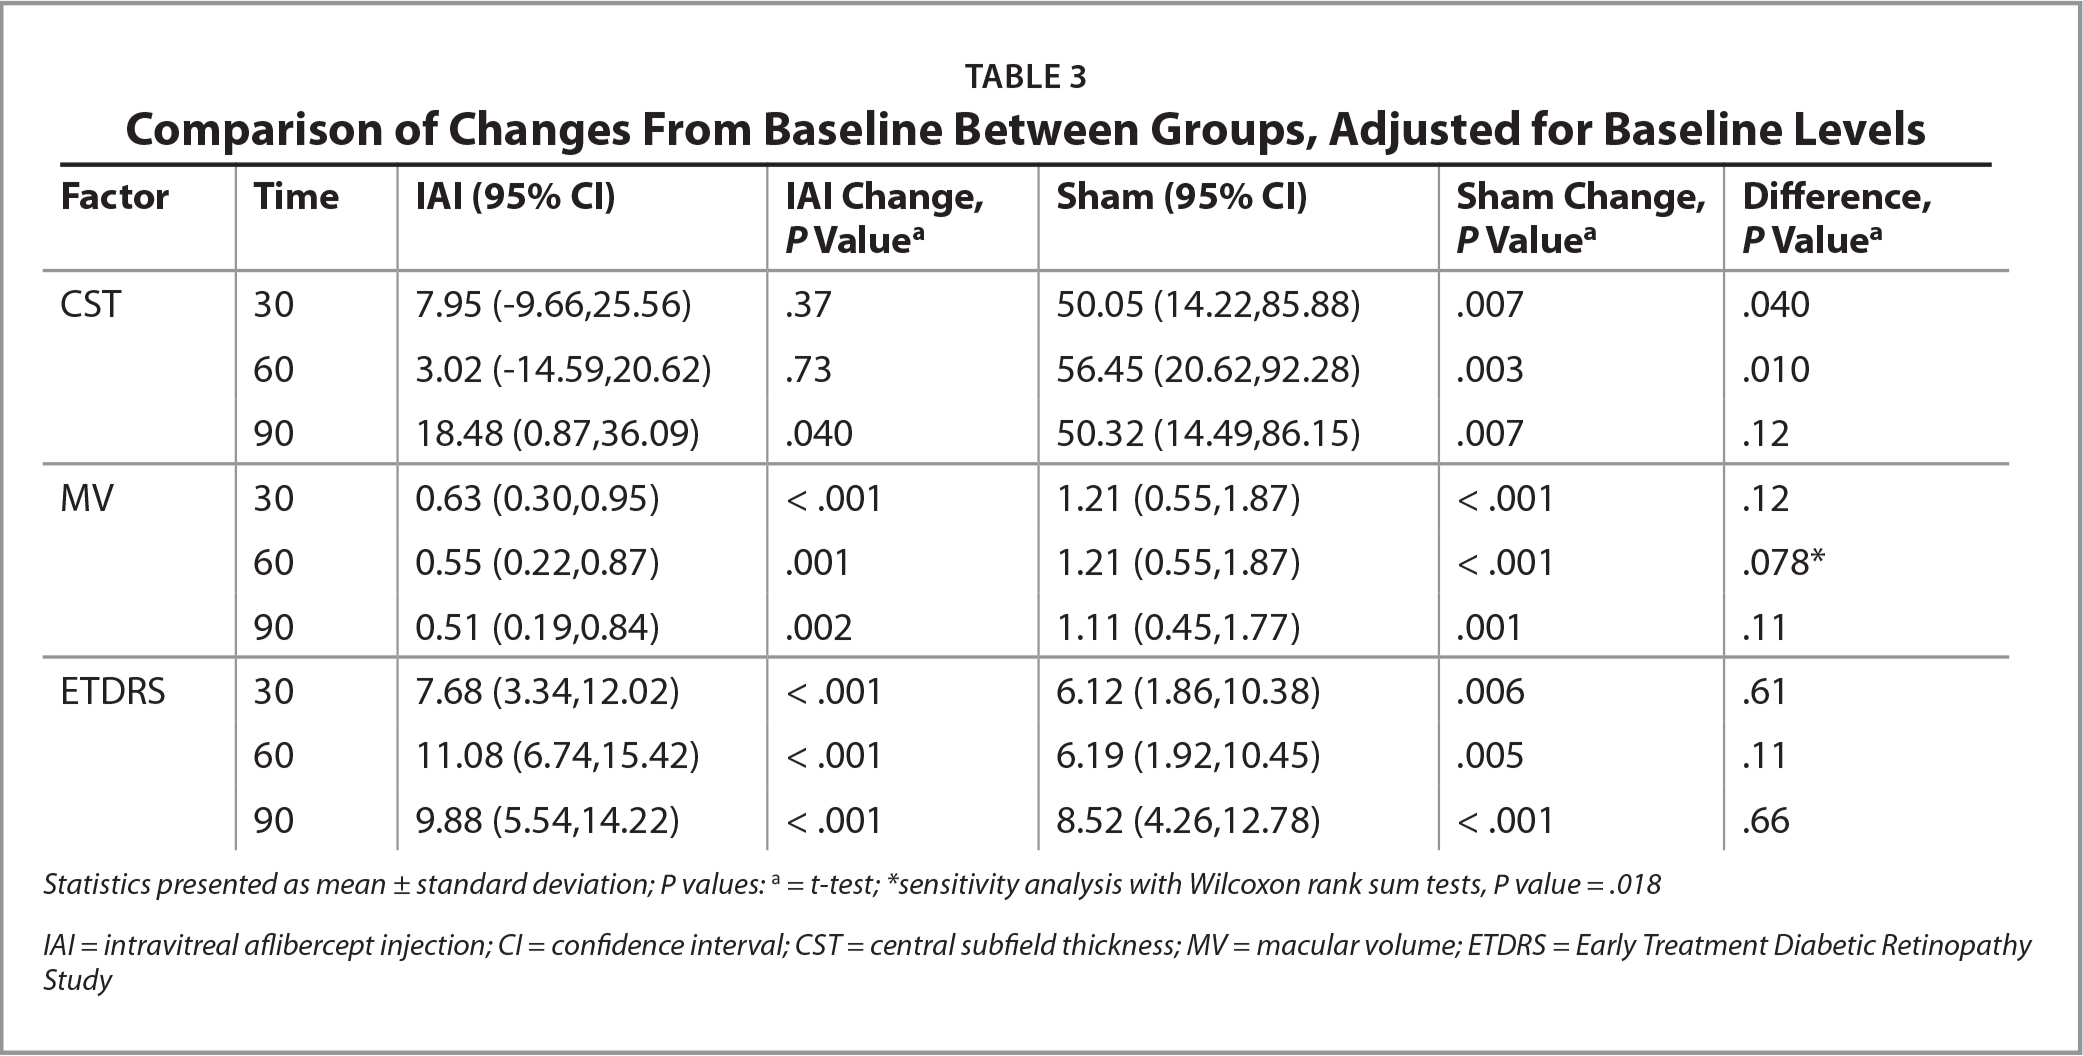 Comparison of Changes From Baseline Between Groups, Adjusted for Baseline Levels